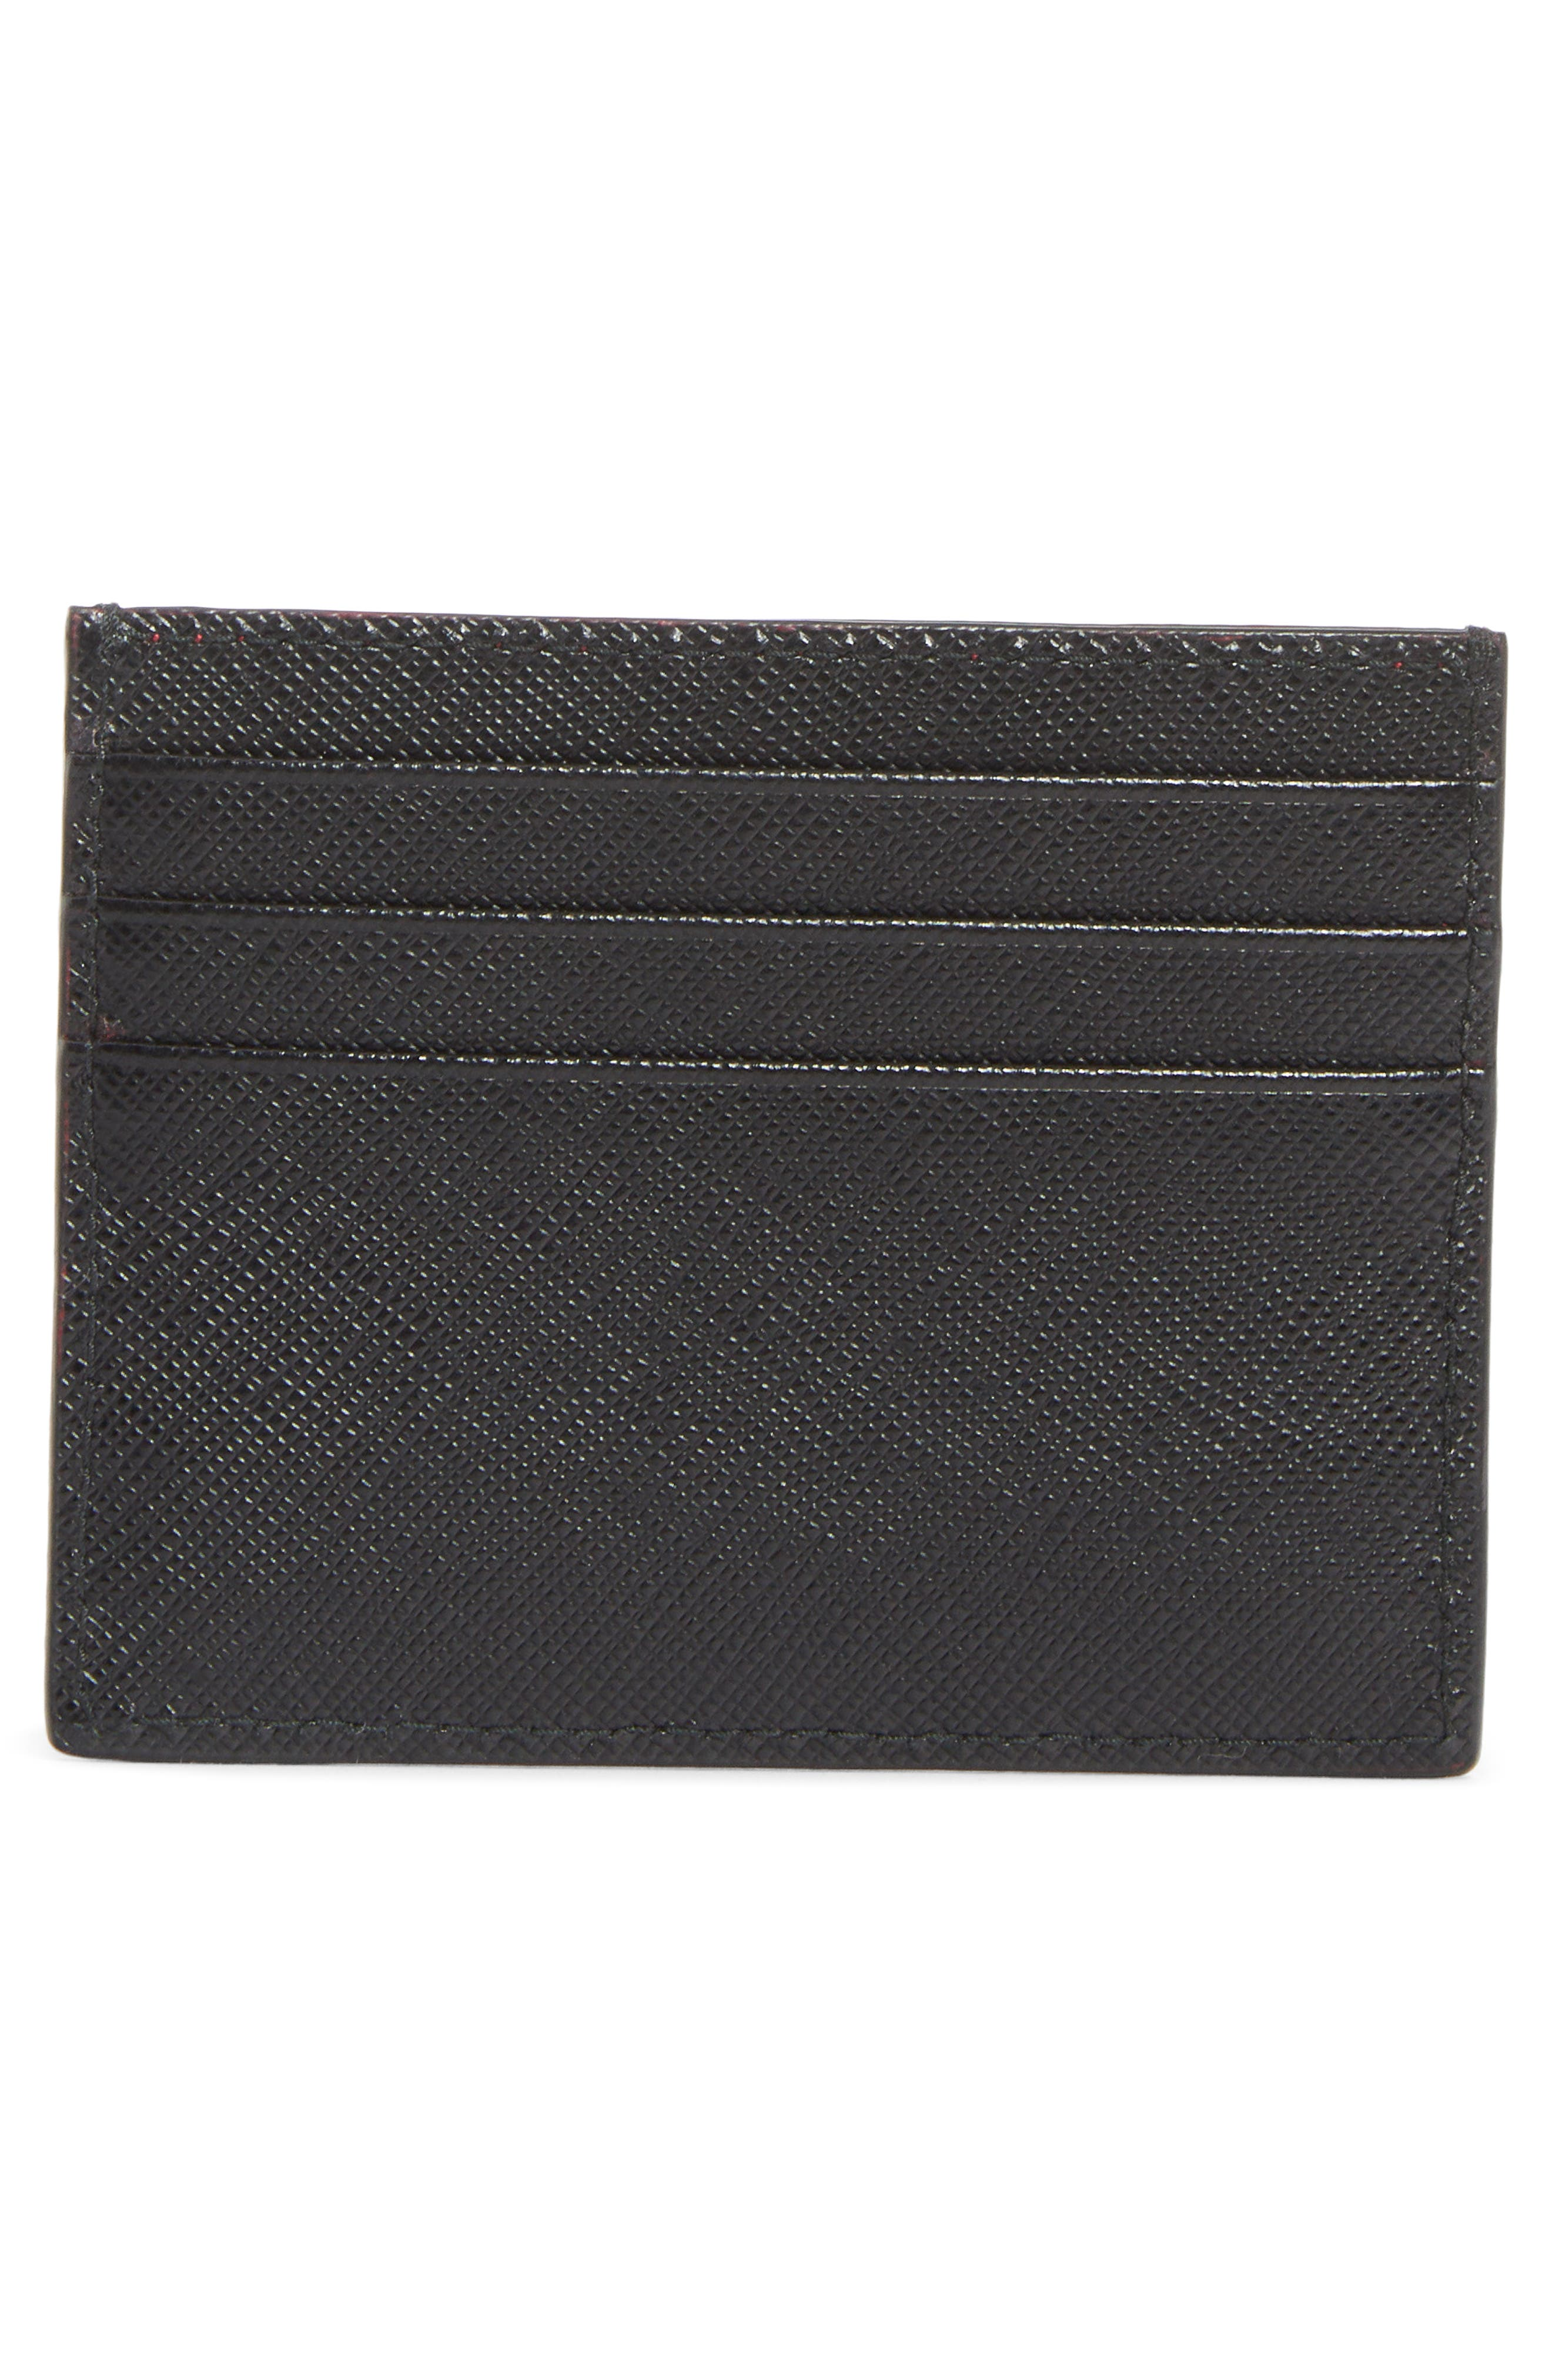 Embellished Saffiano Leather Card Case,                             Alternate thumbnail 2, color,                             001